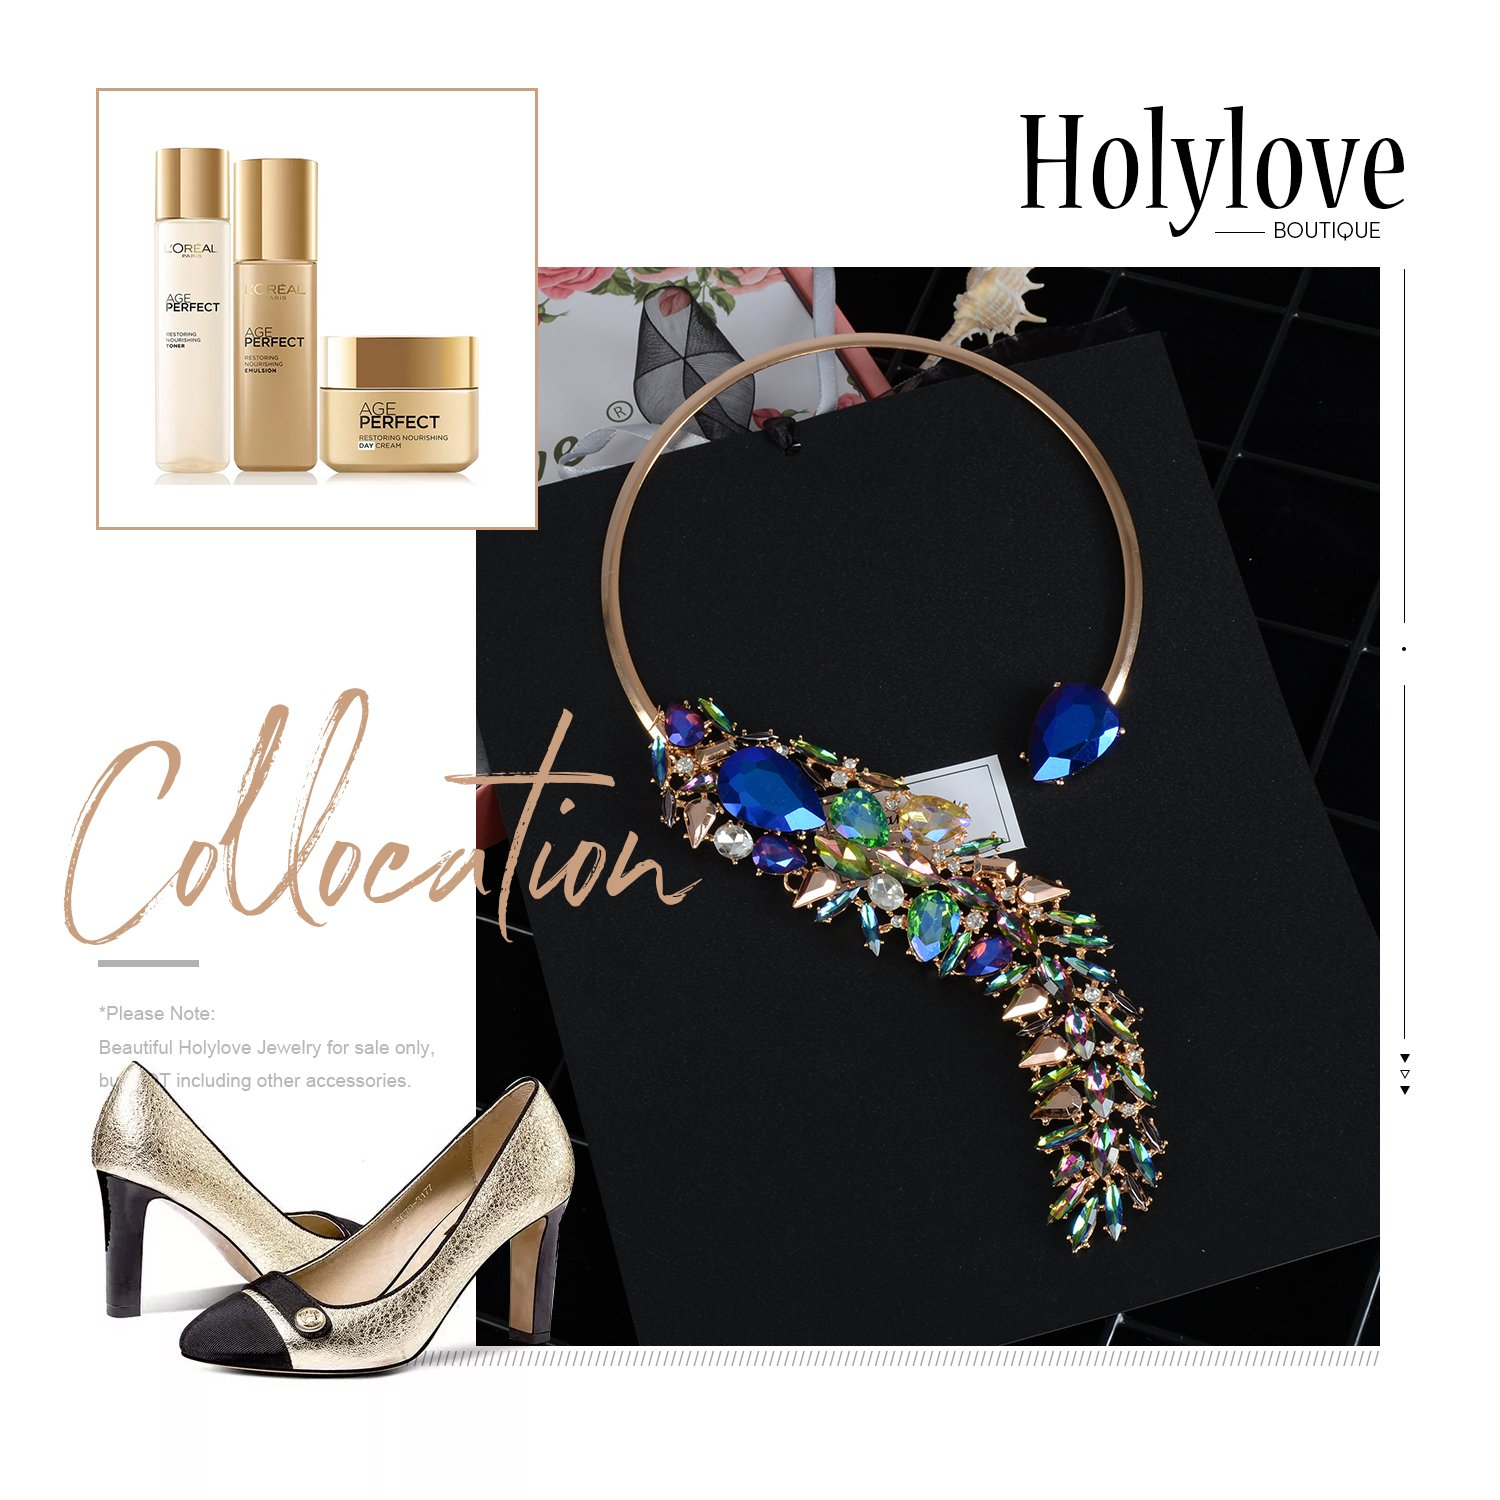 Holylove Women Costume Necklace Colorful, Statement Necklace for Women Novelty Fashion Jewelry 1 pc with Gift Box- HLN0008 Colorful by Holylove (Image #3)